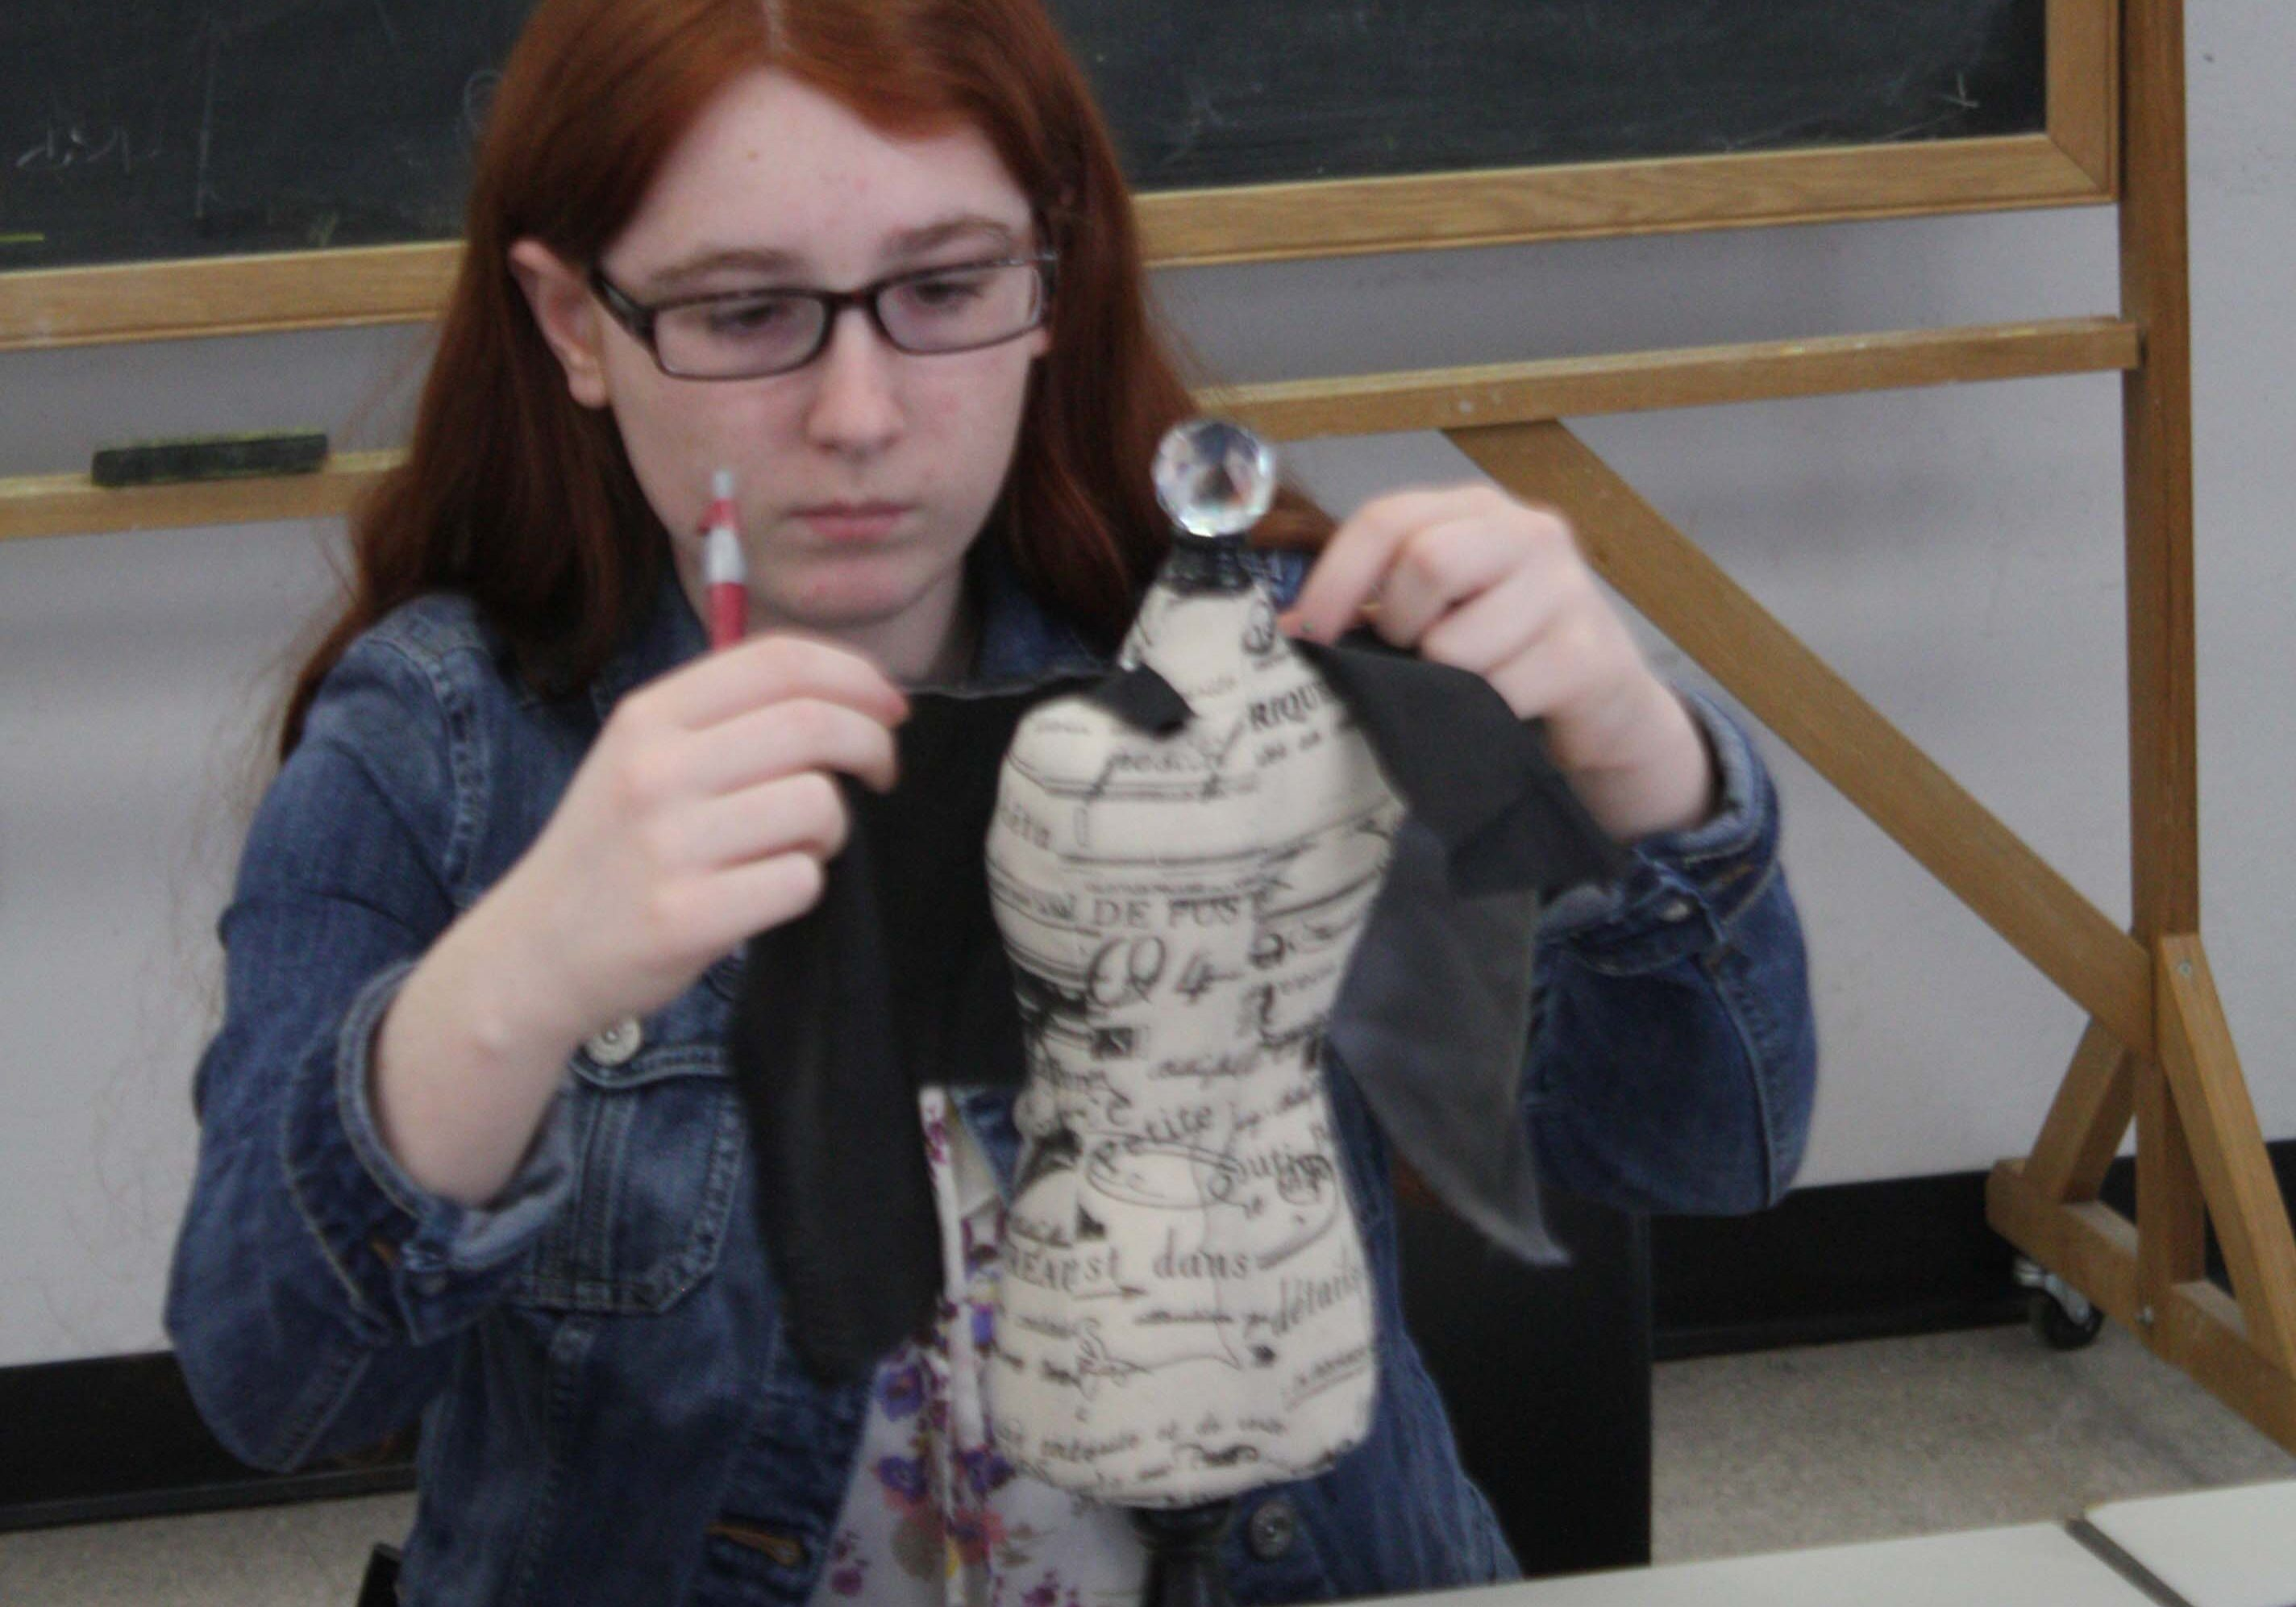 A participant in a teen program designs a dress on a miniature dress form